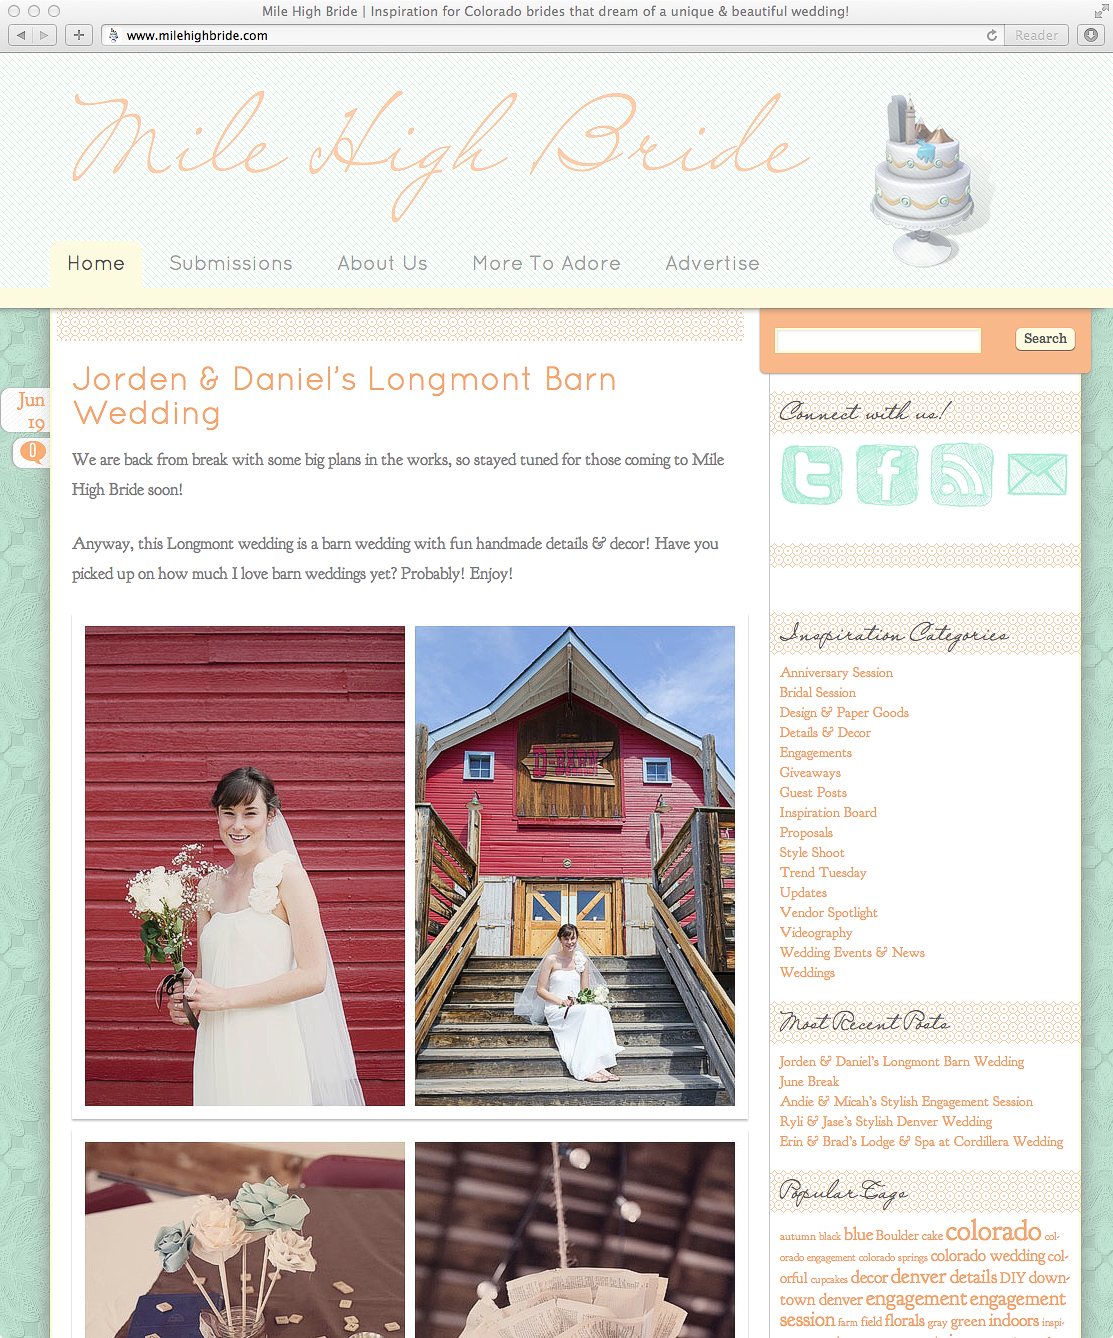 denver wedding phtoographer featured on mile high bride d barn wedding